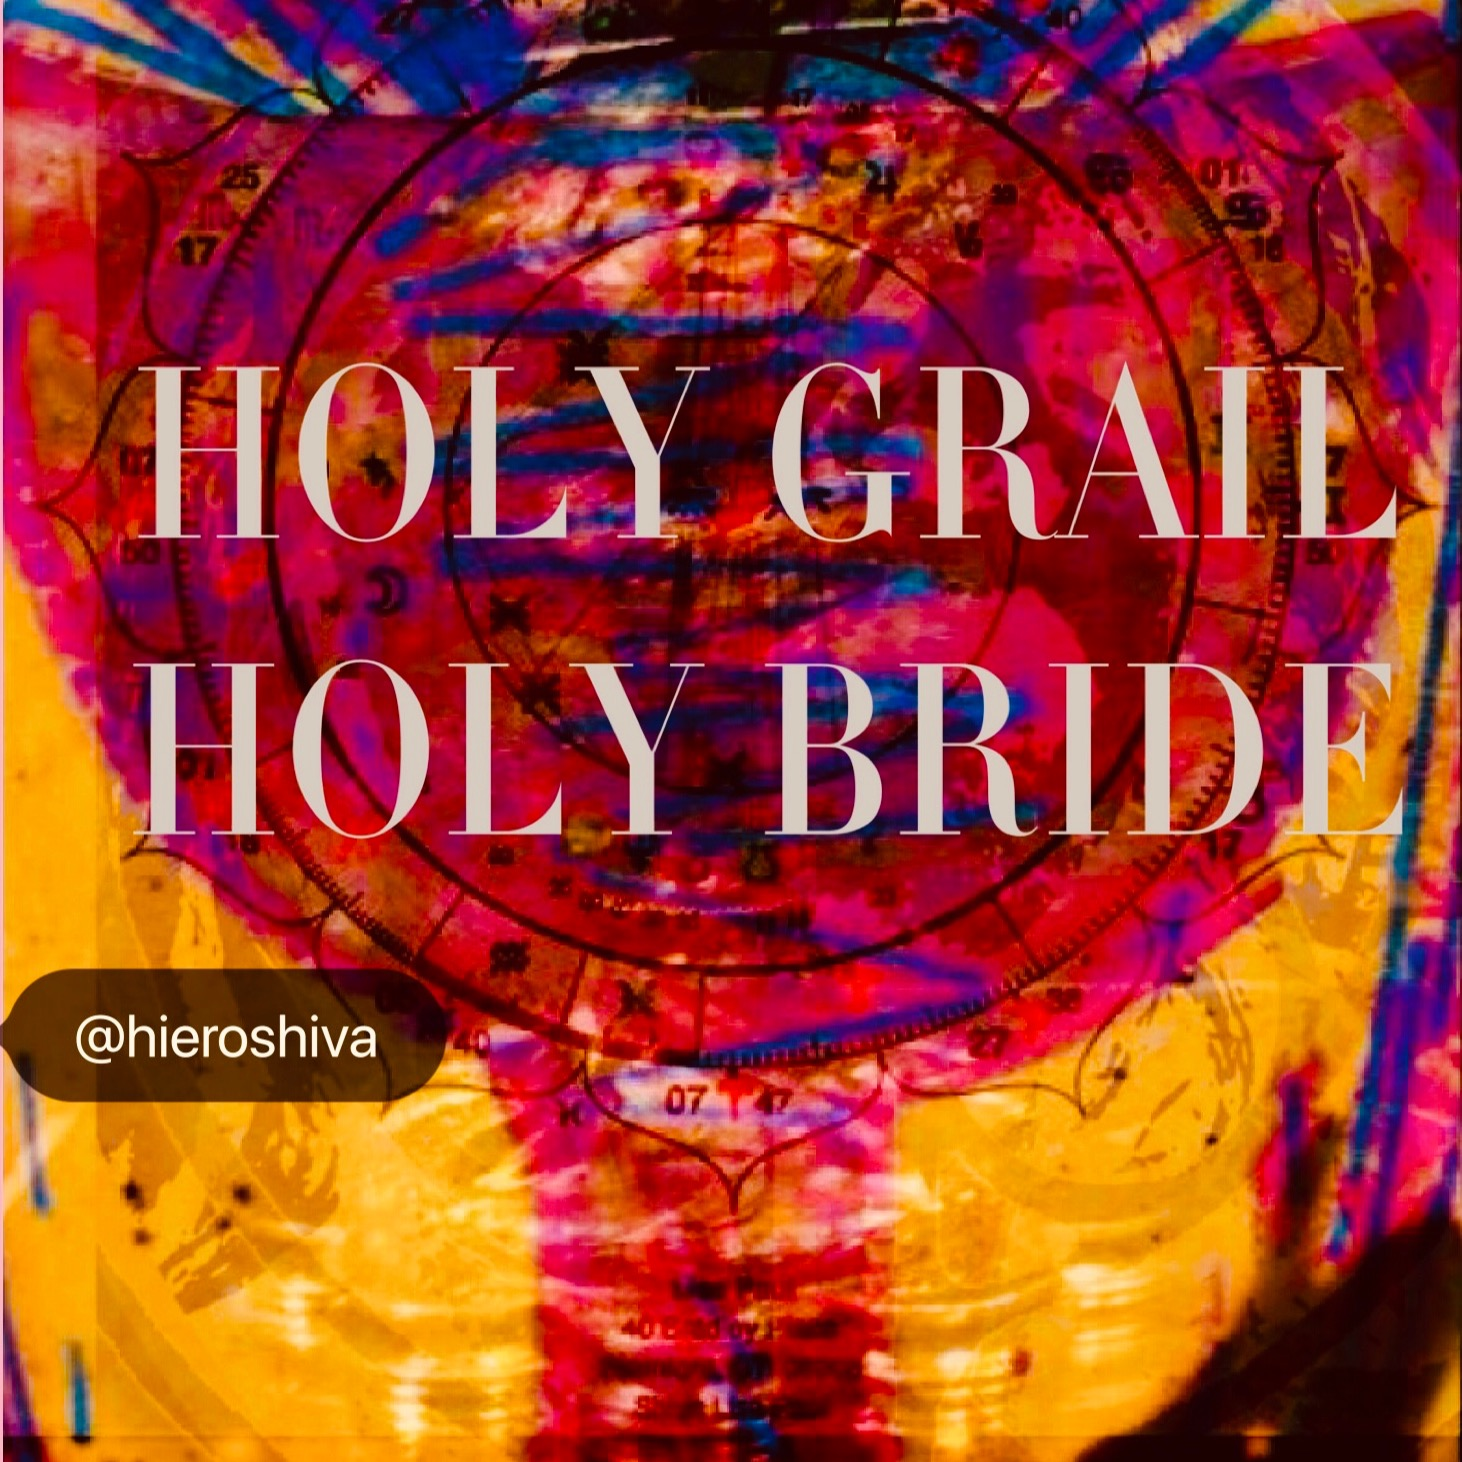 HOLY GRAIL, HOLY BRIDE